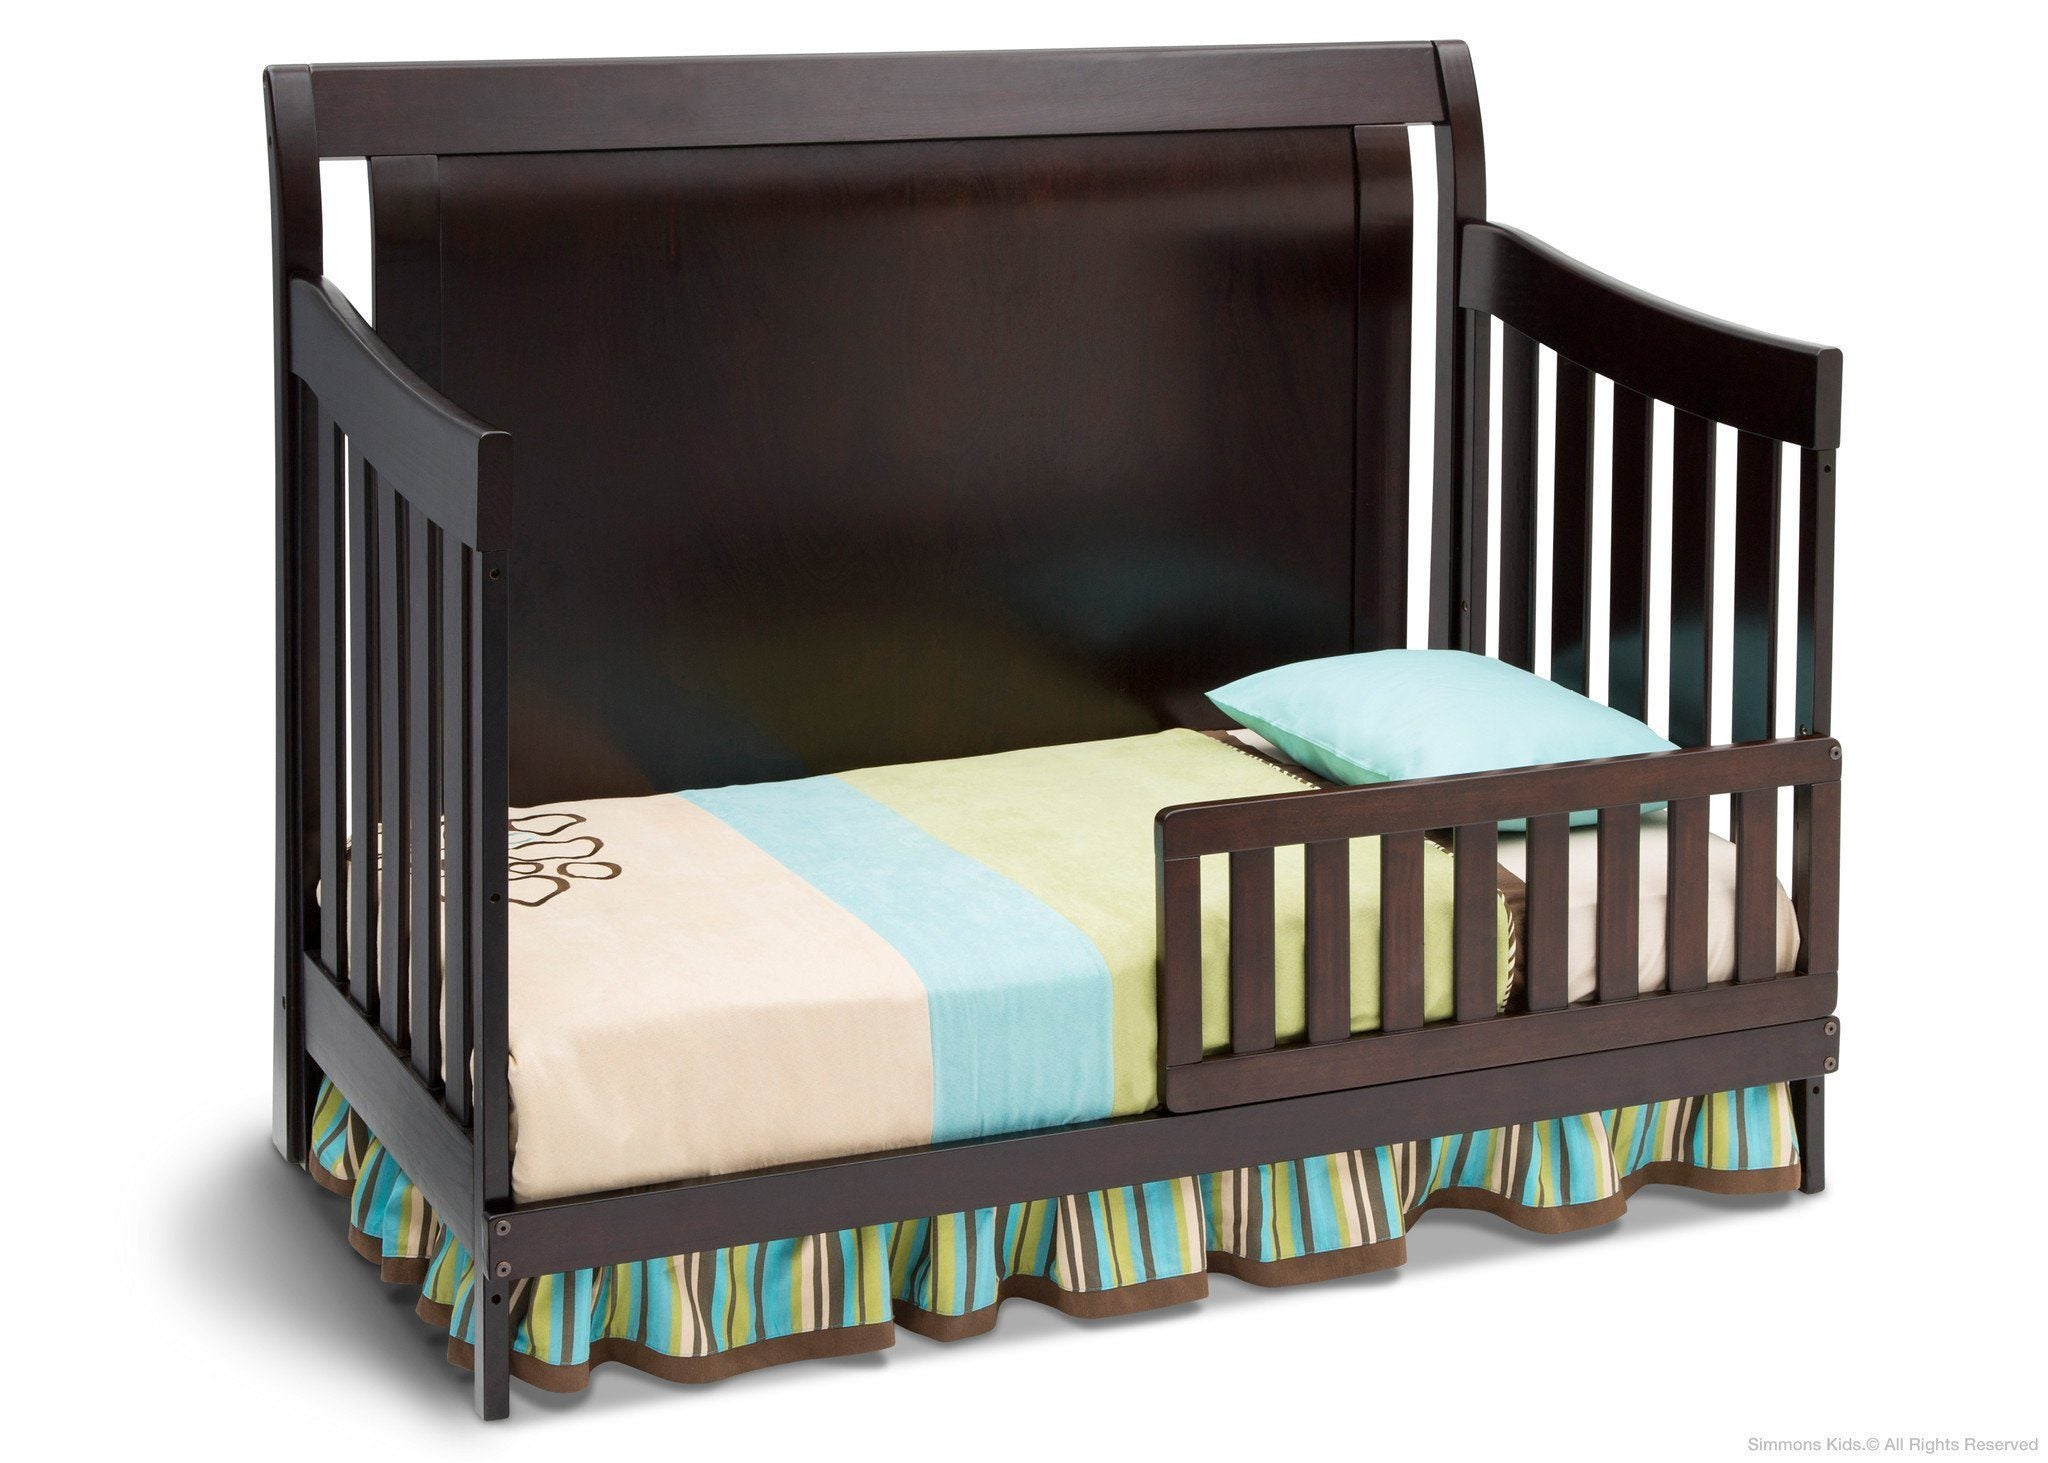 Simmons Kids Black Espresso (907) Madisson Crib 'N' More, Toddler Bed Conversion b3b